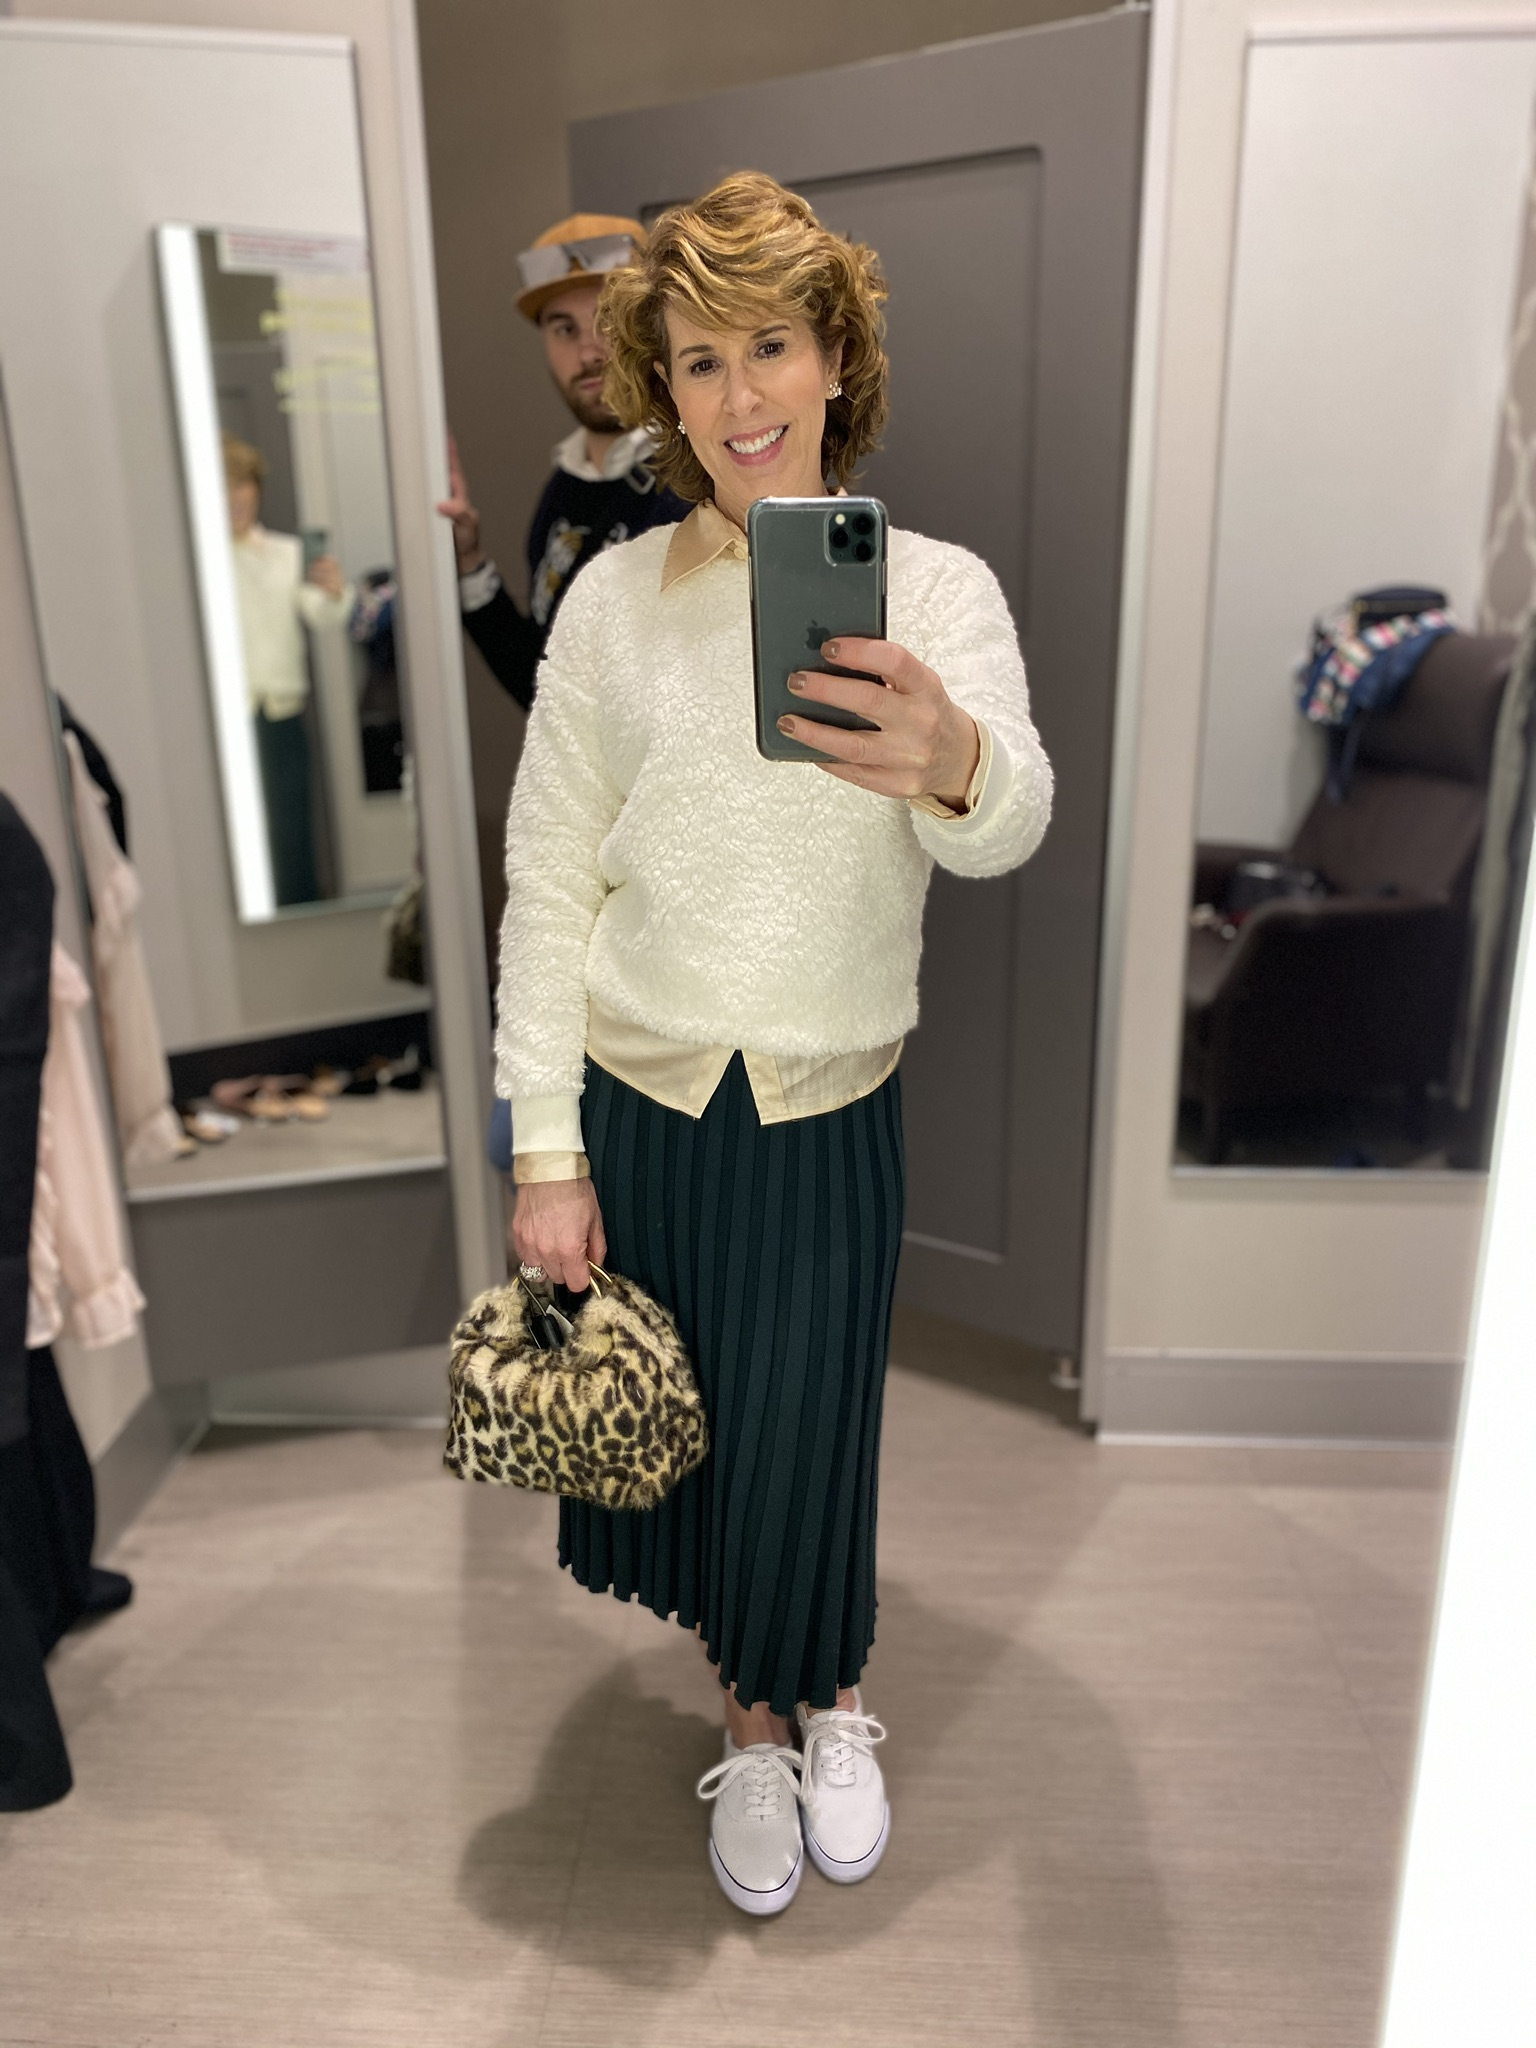 dressing room selfie of woman in green pleated skirt, cream sweater with blush button down under and leopard bag